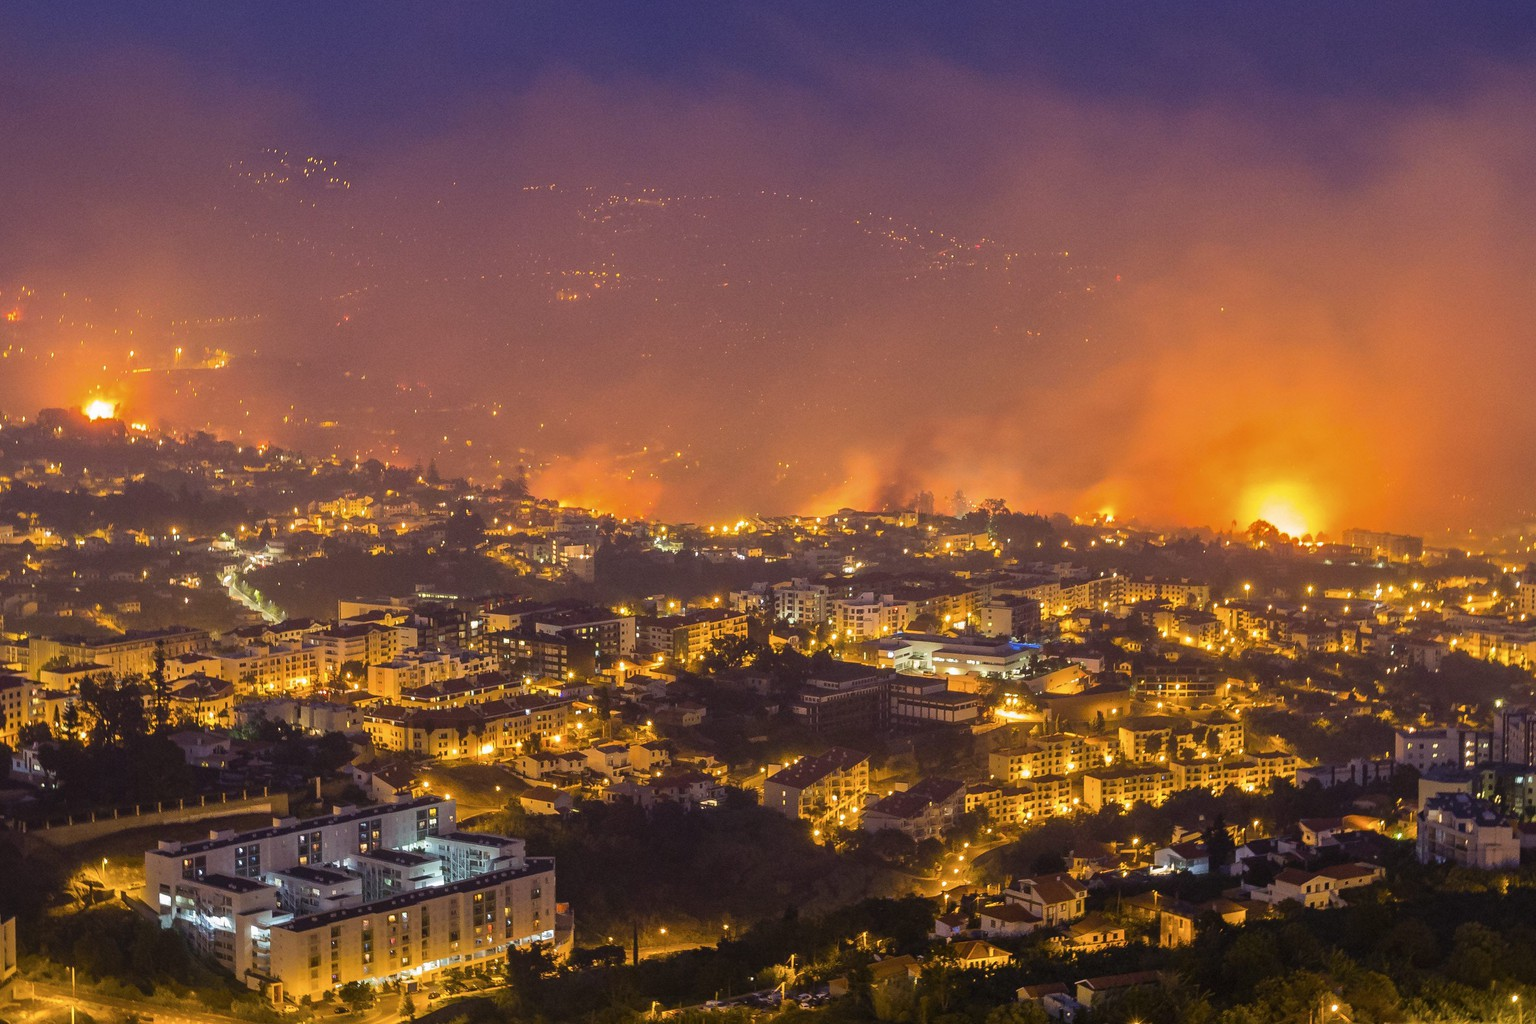 epa05469099 Forest fire in Funchal, Madeira Island, Portugal, 09 August 2016. The fire has led to the evacuation of 400 people.  Portugal remains on high alert as a wave of wildfires has swept the country with around 350 isolated fires affecting swathes of the countryside.  EPA/GREGÓRIO CUNHA